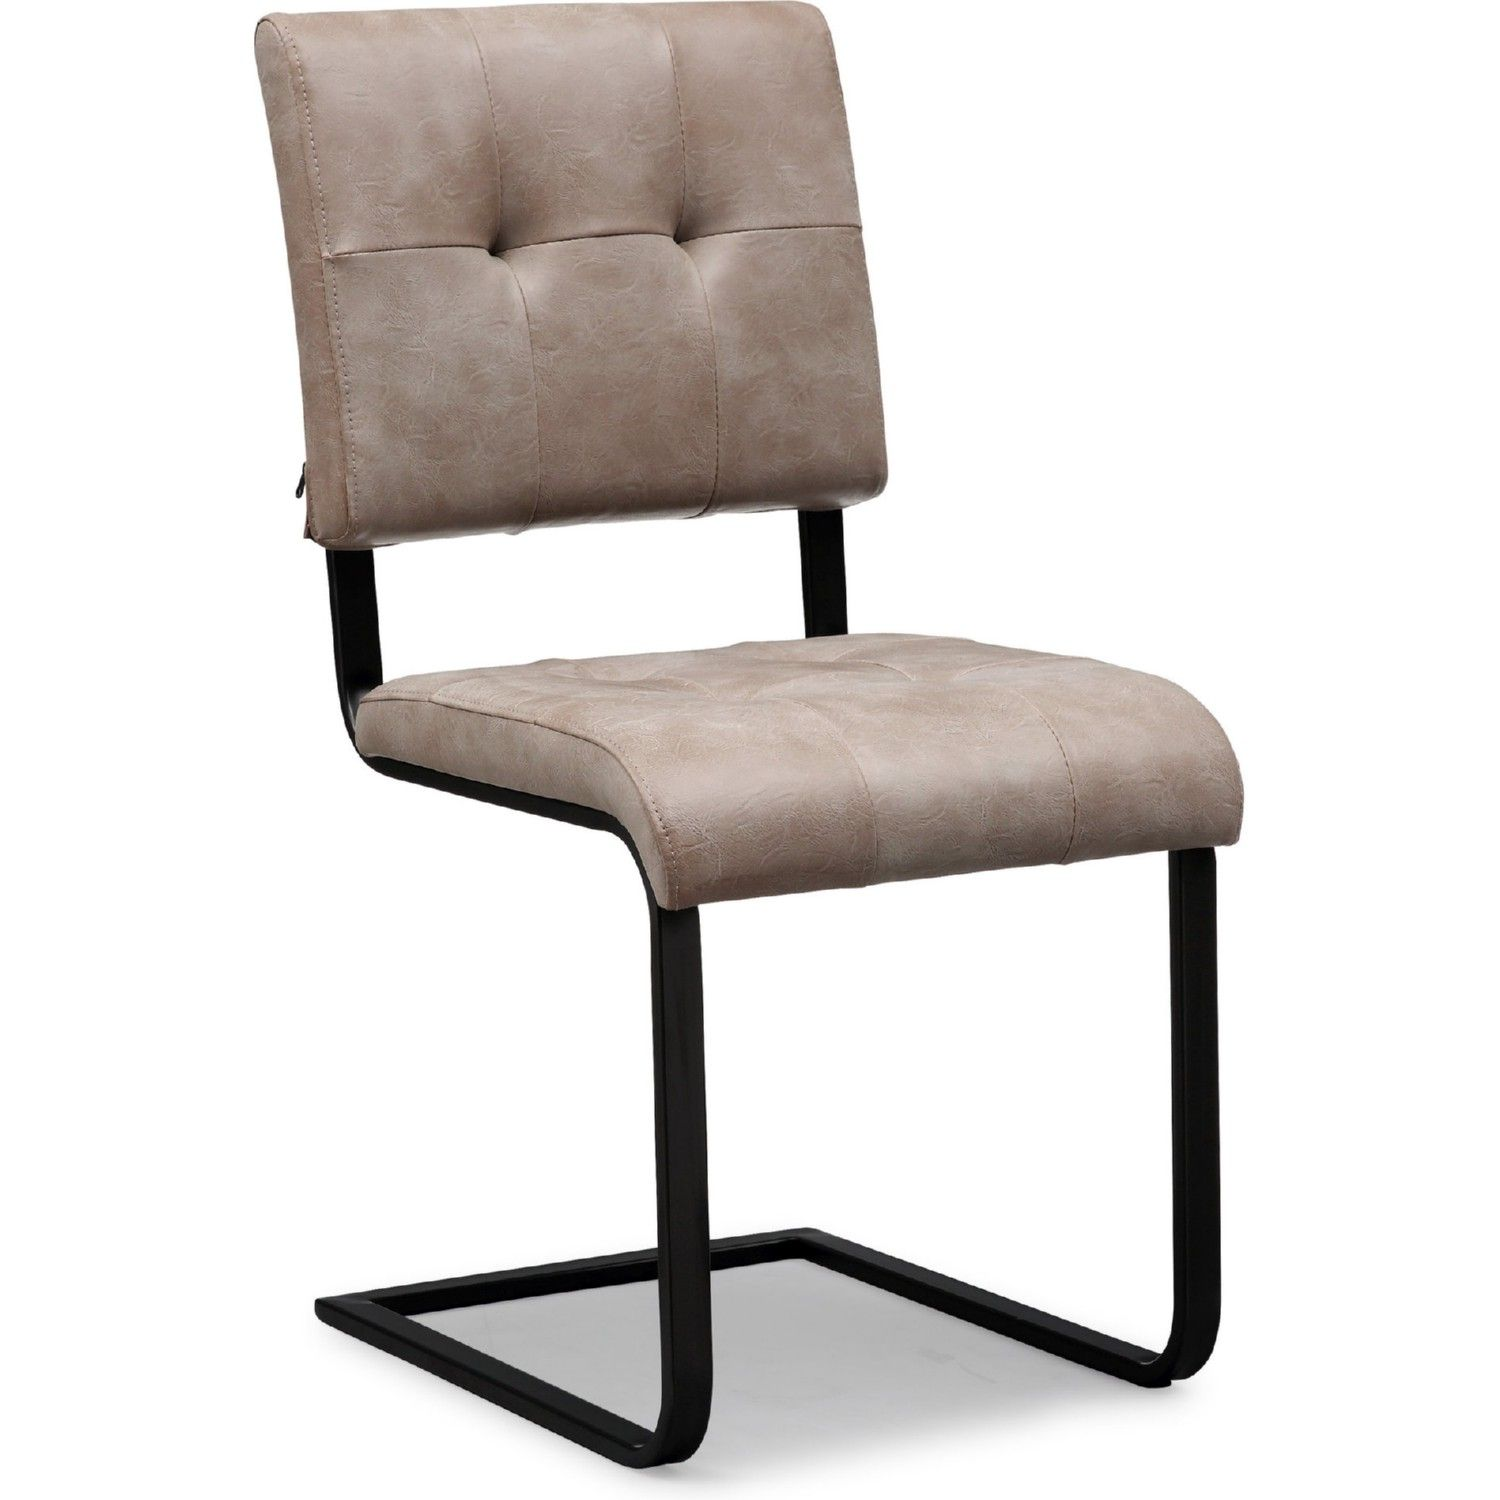 TOV Furniture Cora Dining Chair In Tufted Smokey Taupe Eco Leather On Matte  Black Steel Base (Set Of 2)